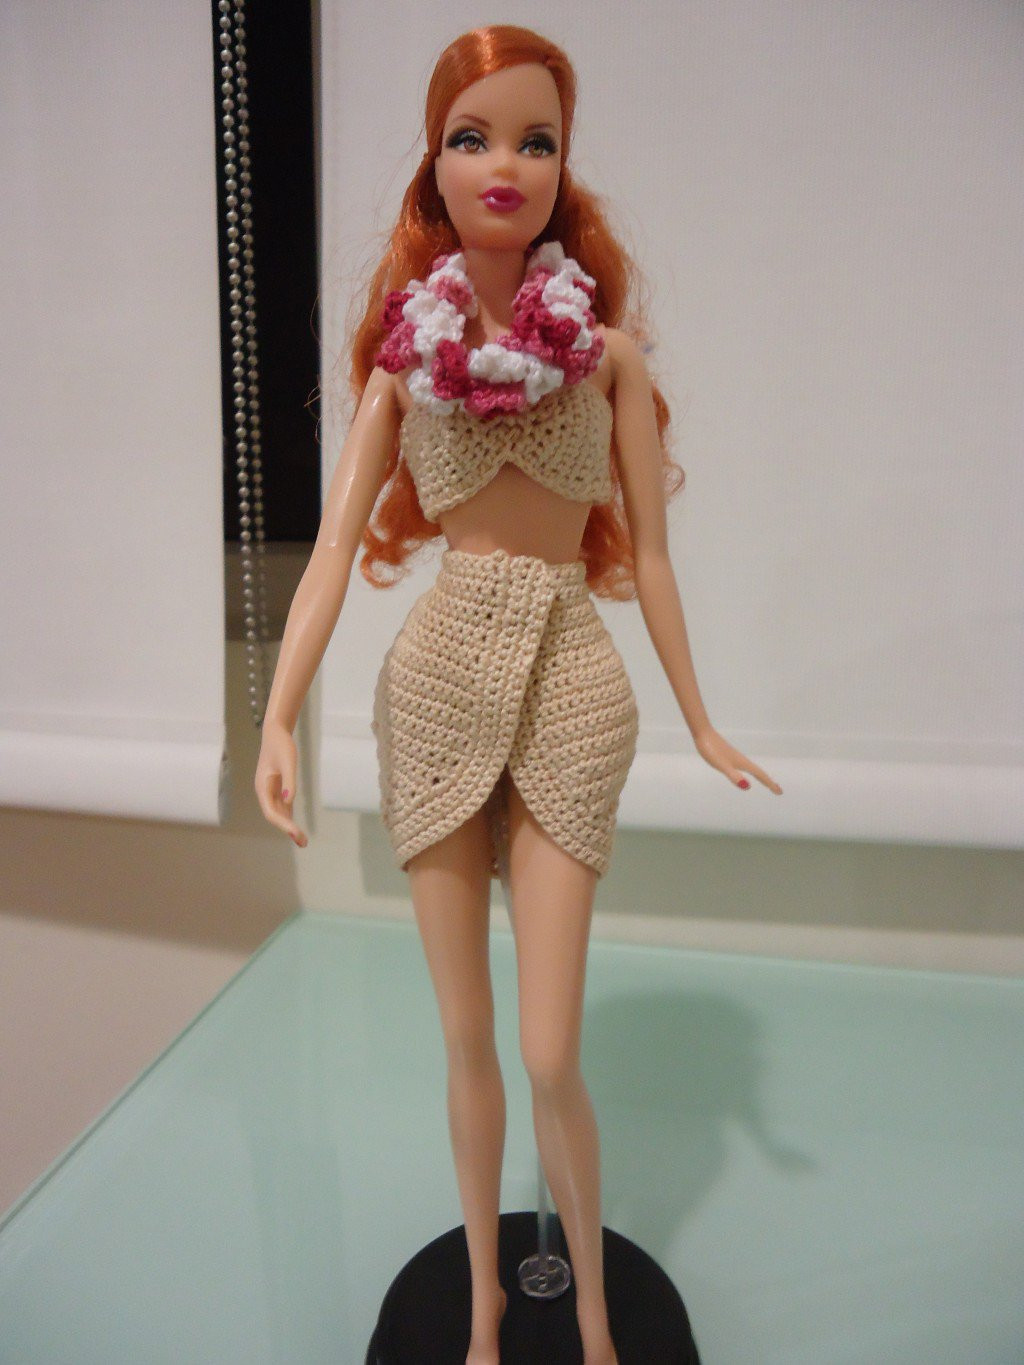 Crochet Outfits Inspirational Crochet Clothes for Your Barbie Doll Tips and Free Of Great 42 Ideas Crochet Outfits